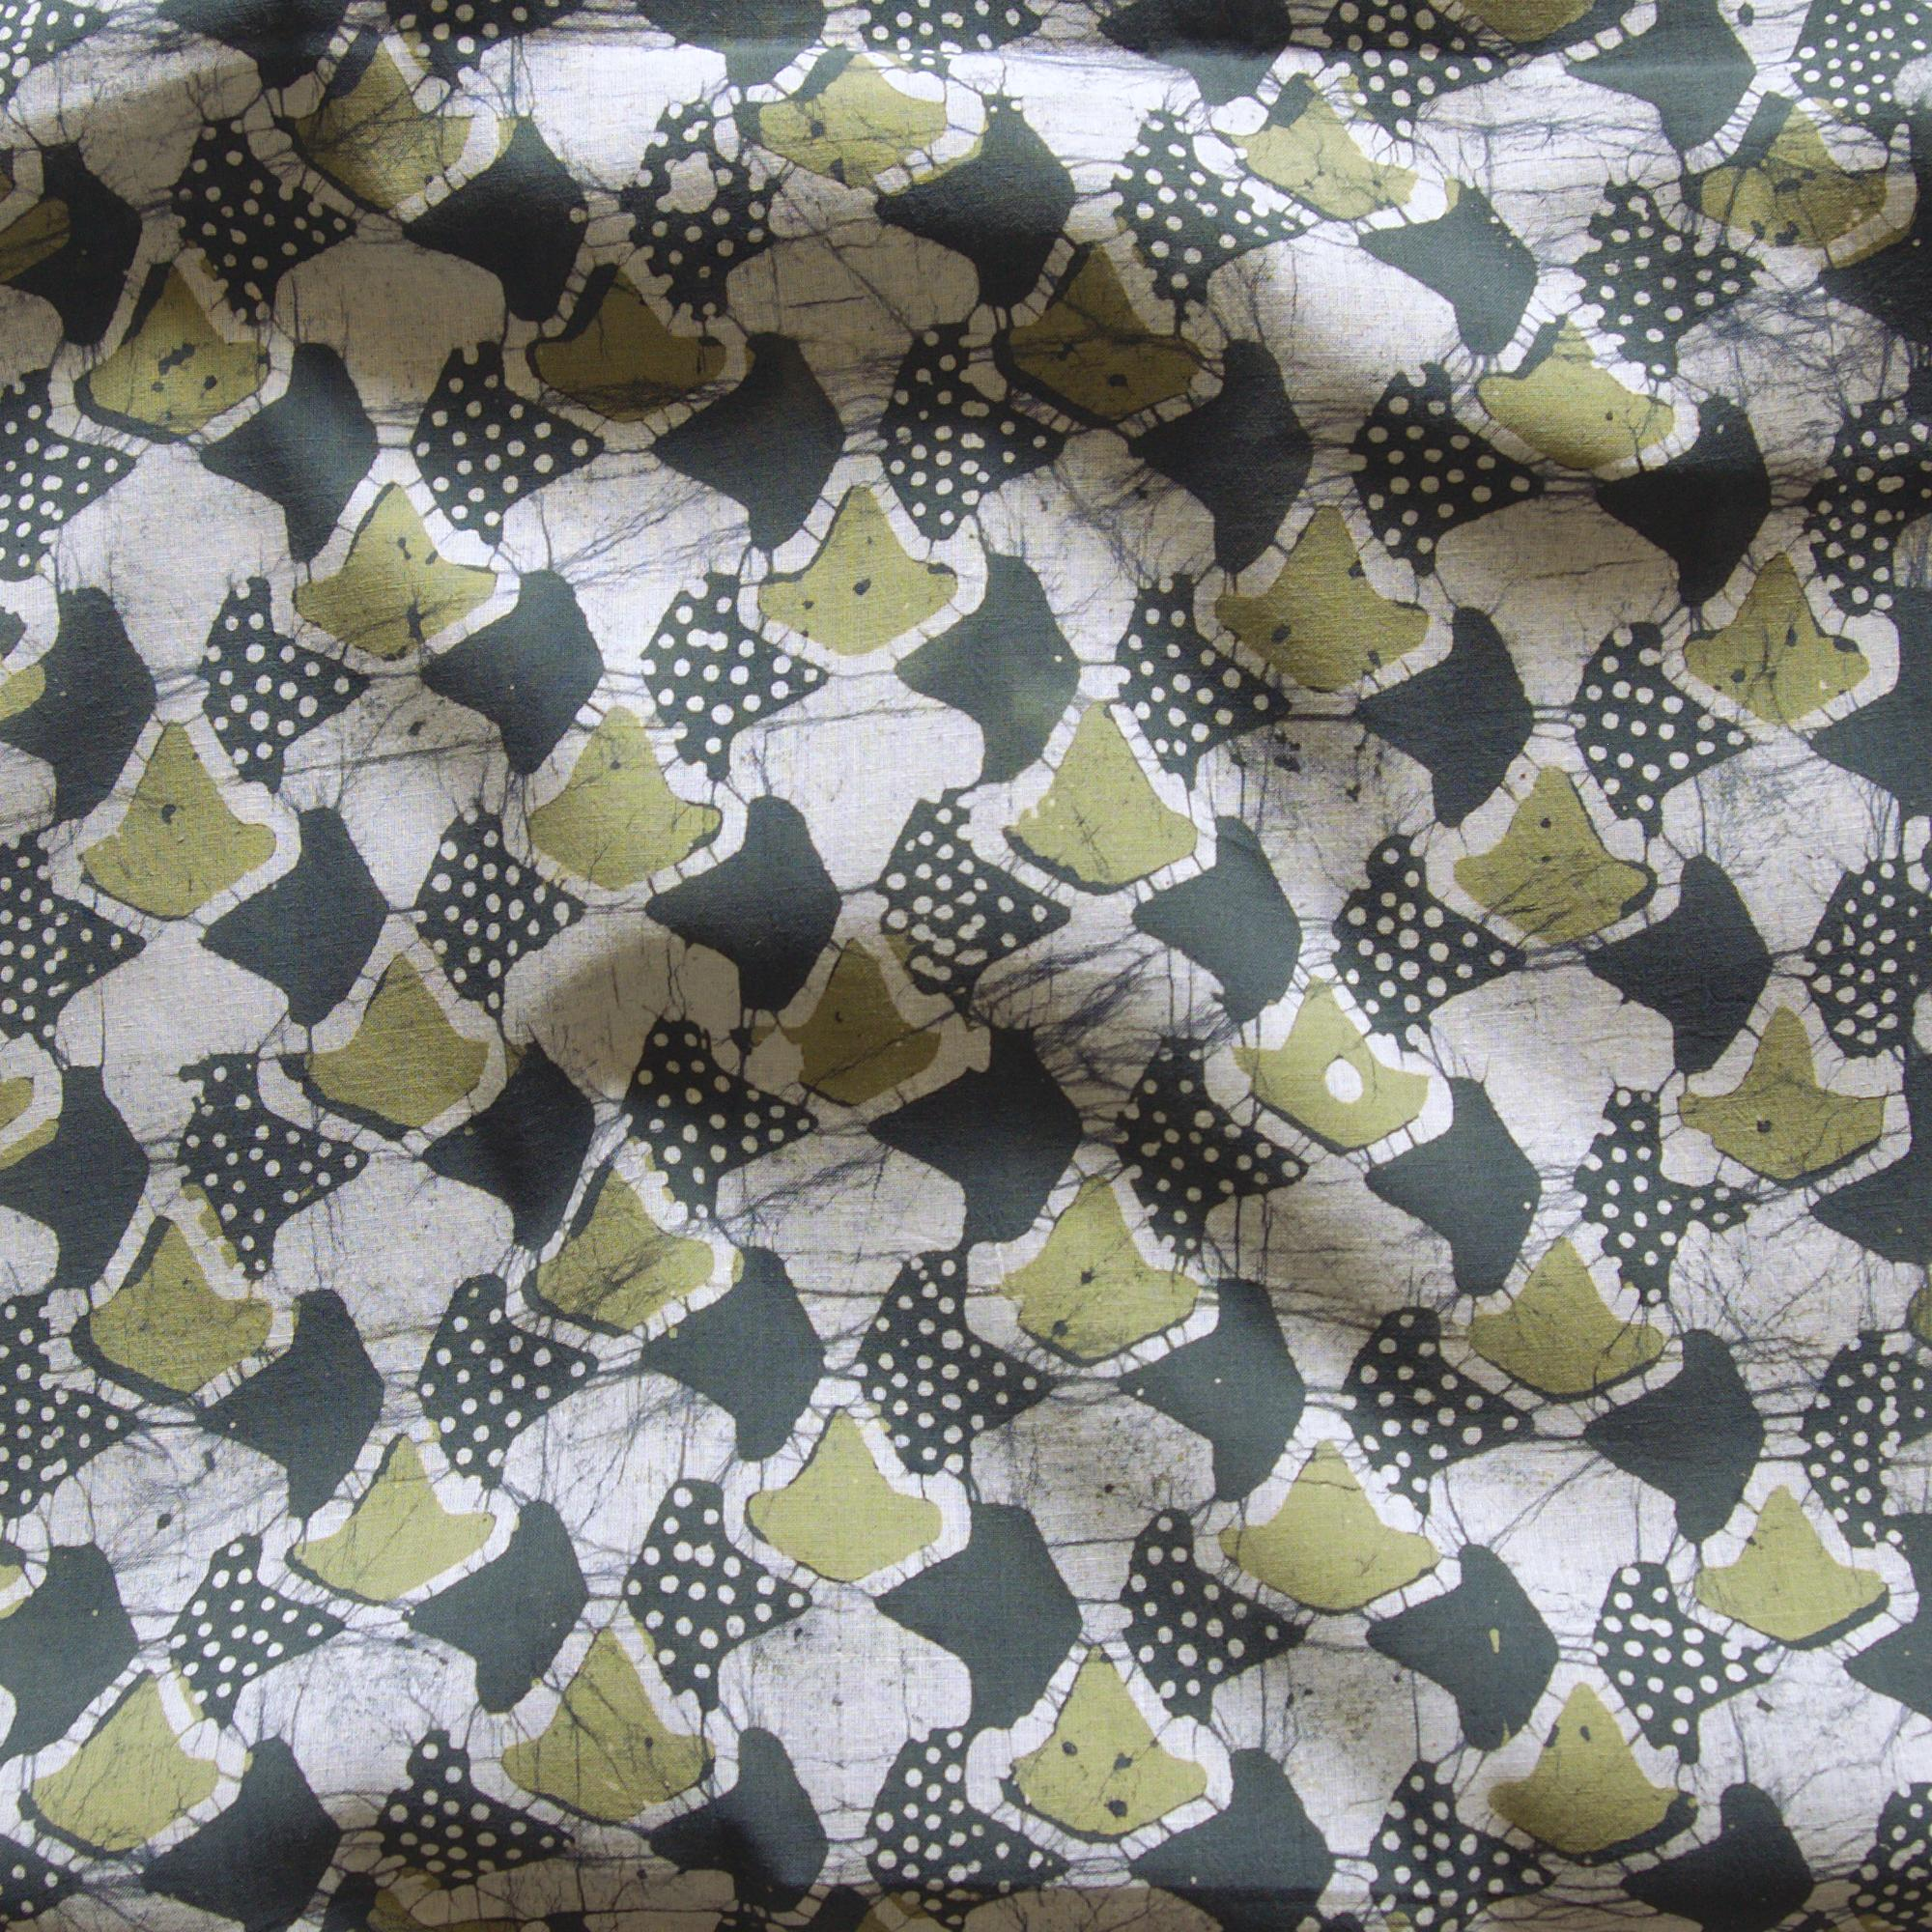 1 - SHA26 - 100% Block-Printed Batik Cotton Fabric From India - Sea Sponge Motif - Contrast